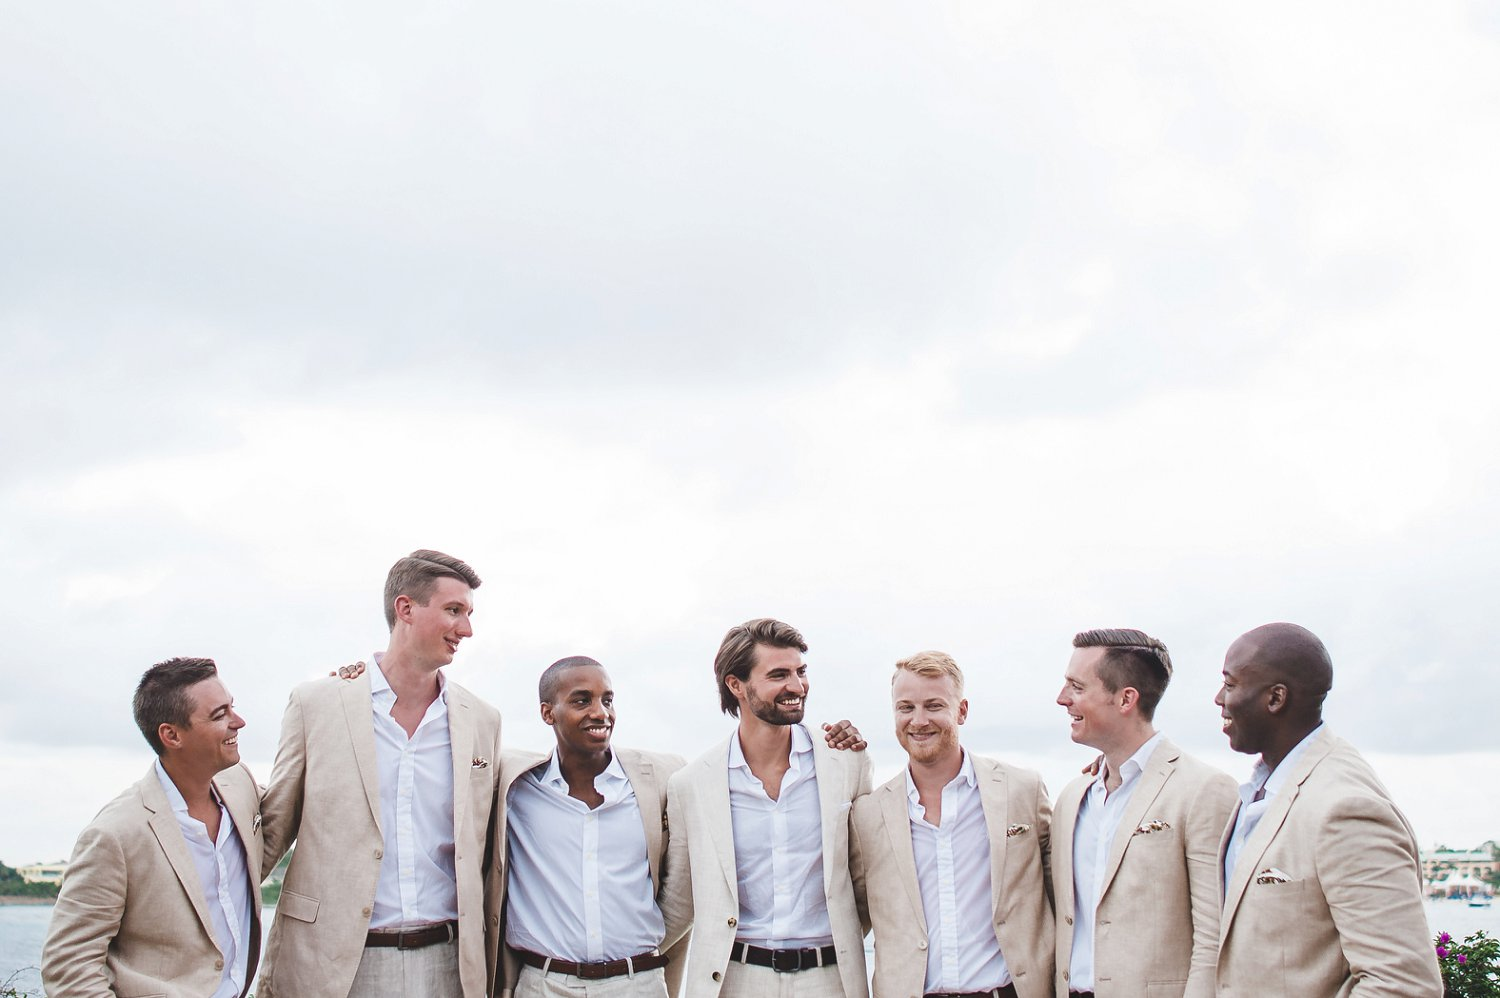 Groom and groomsmen in tan/khaki suits and white shirts with no tie waiting for destination wedding ceremony.